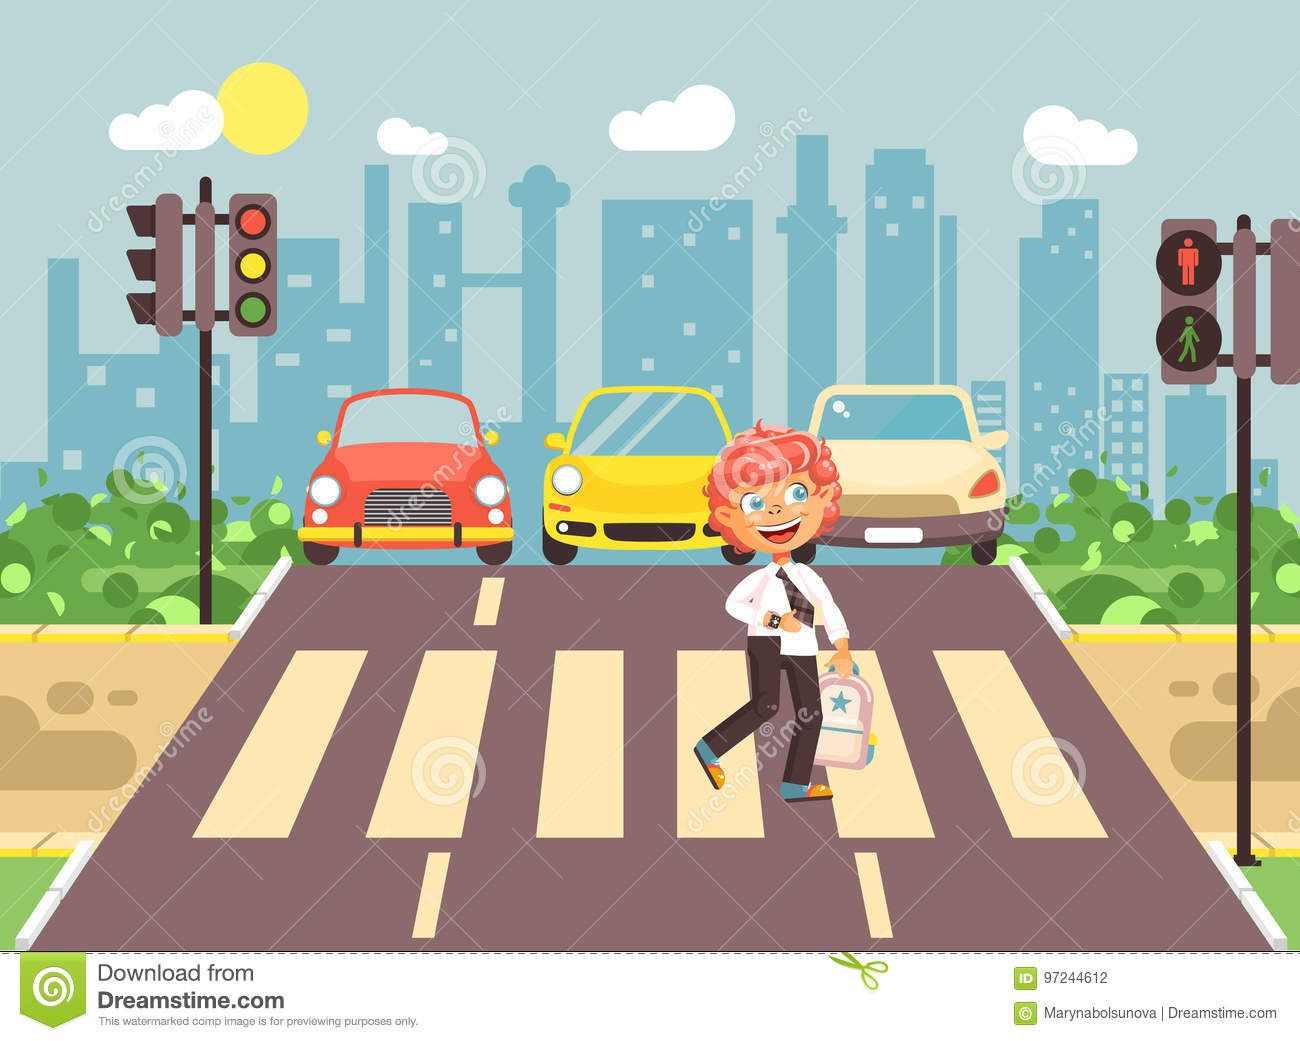 Road Crossing Clipart Vector Illustration Cartoon Character Child Observance